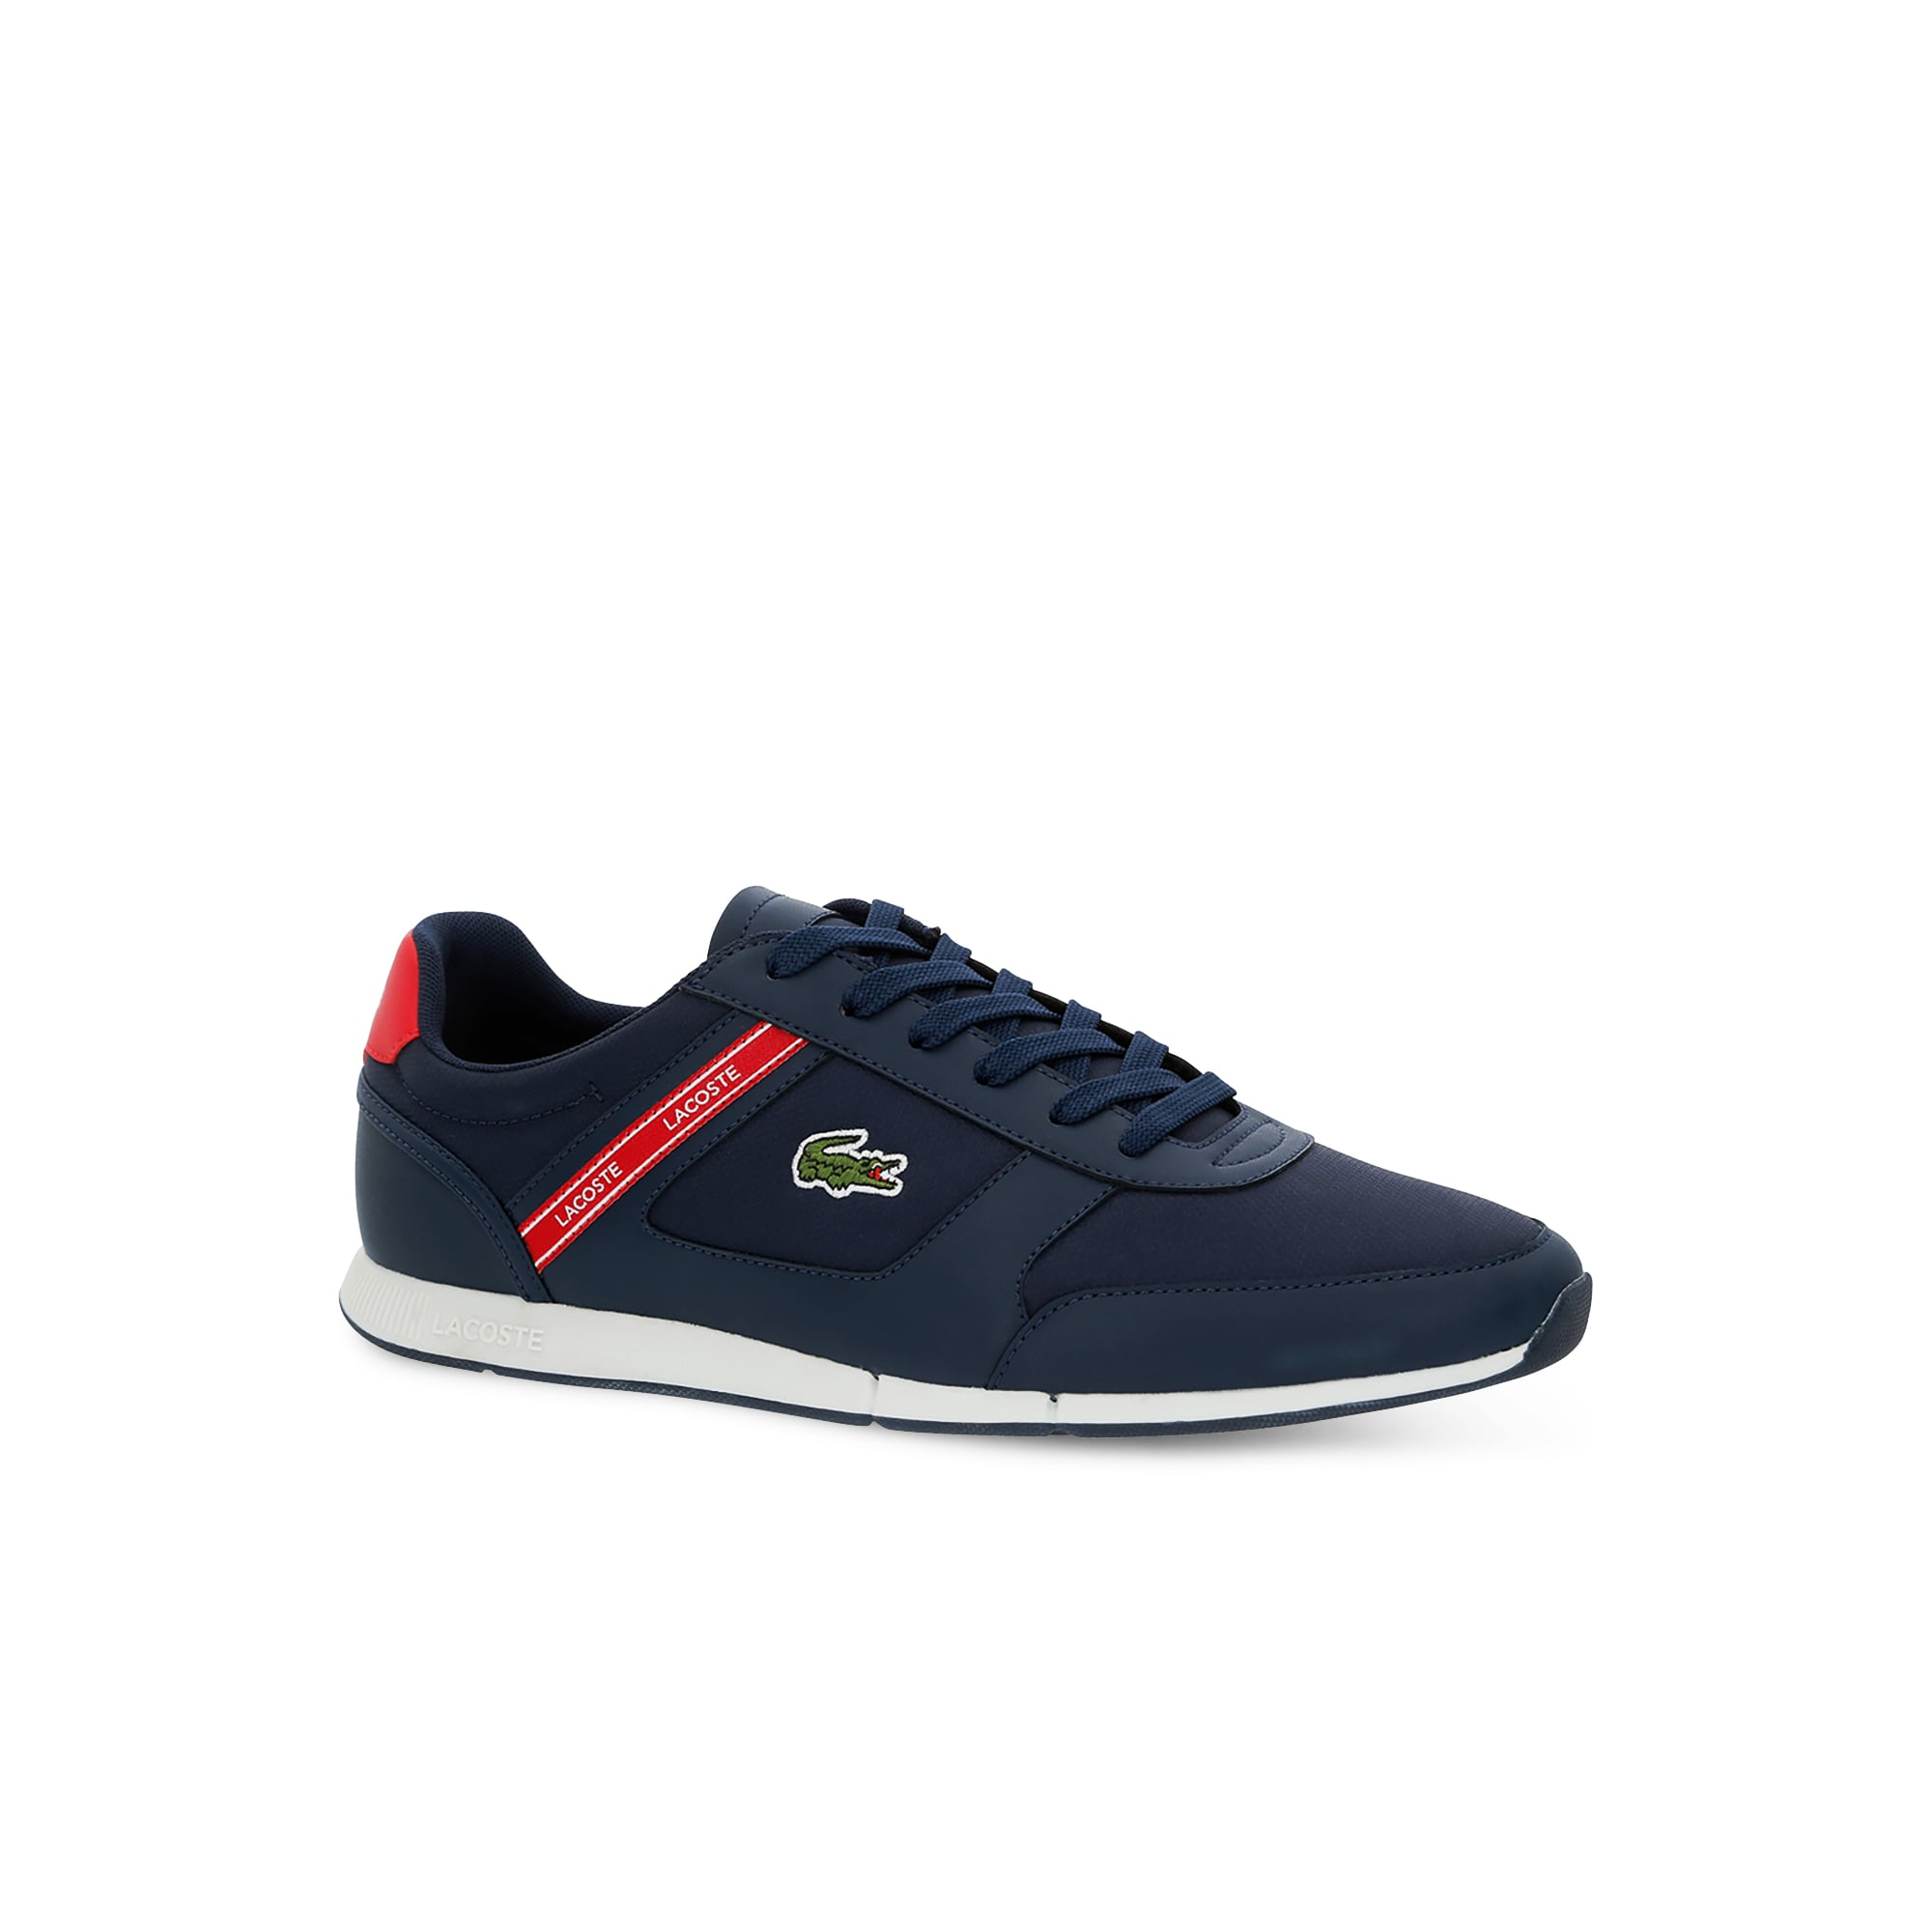 24704f1b6834 Lacoste shoes for men  Sneakers